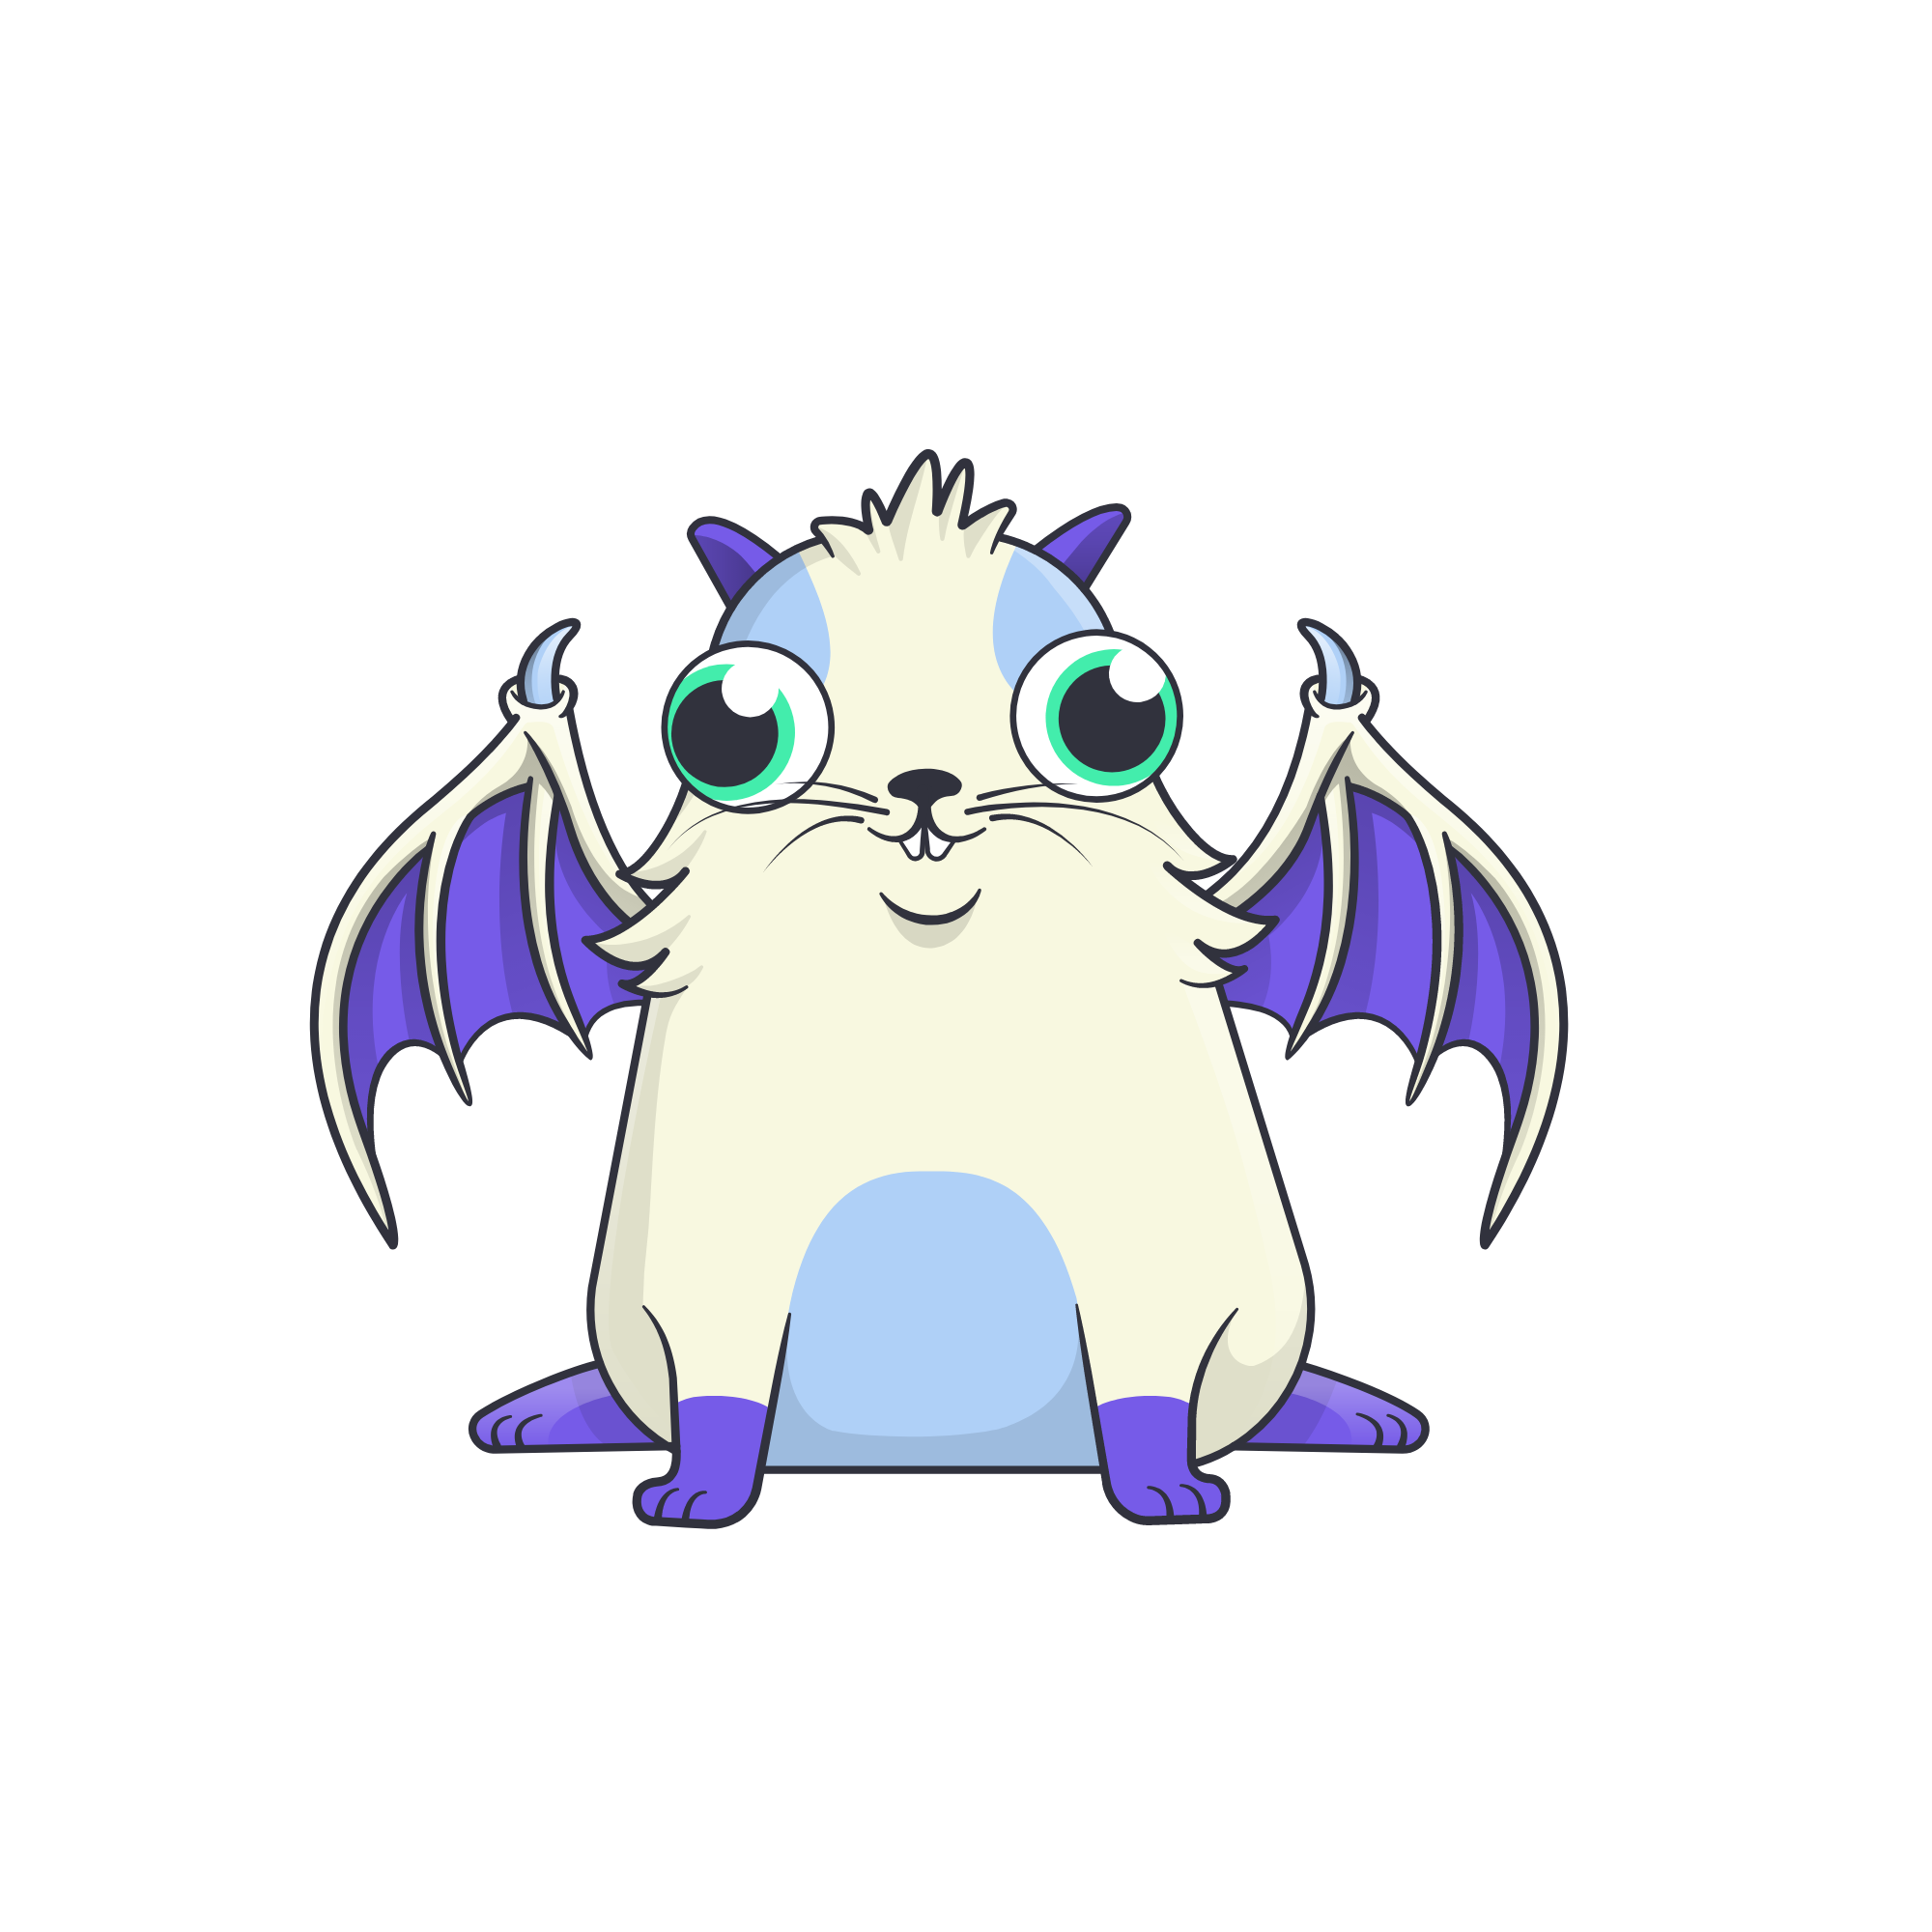 cryptokitty #1241802